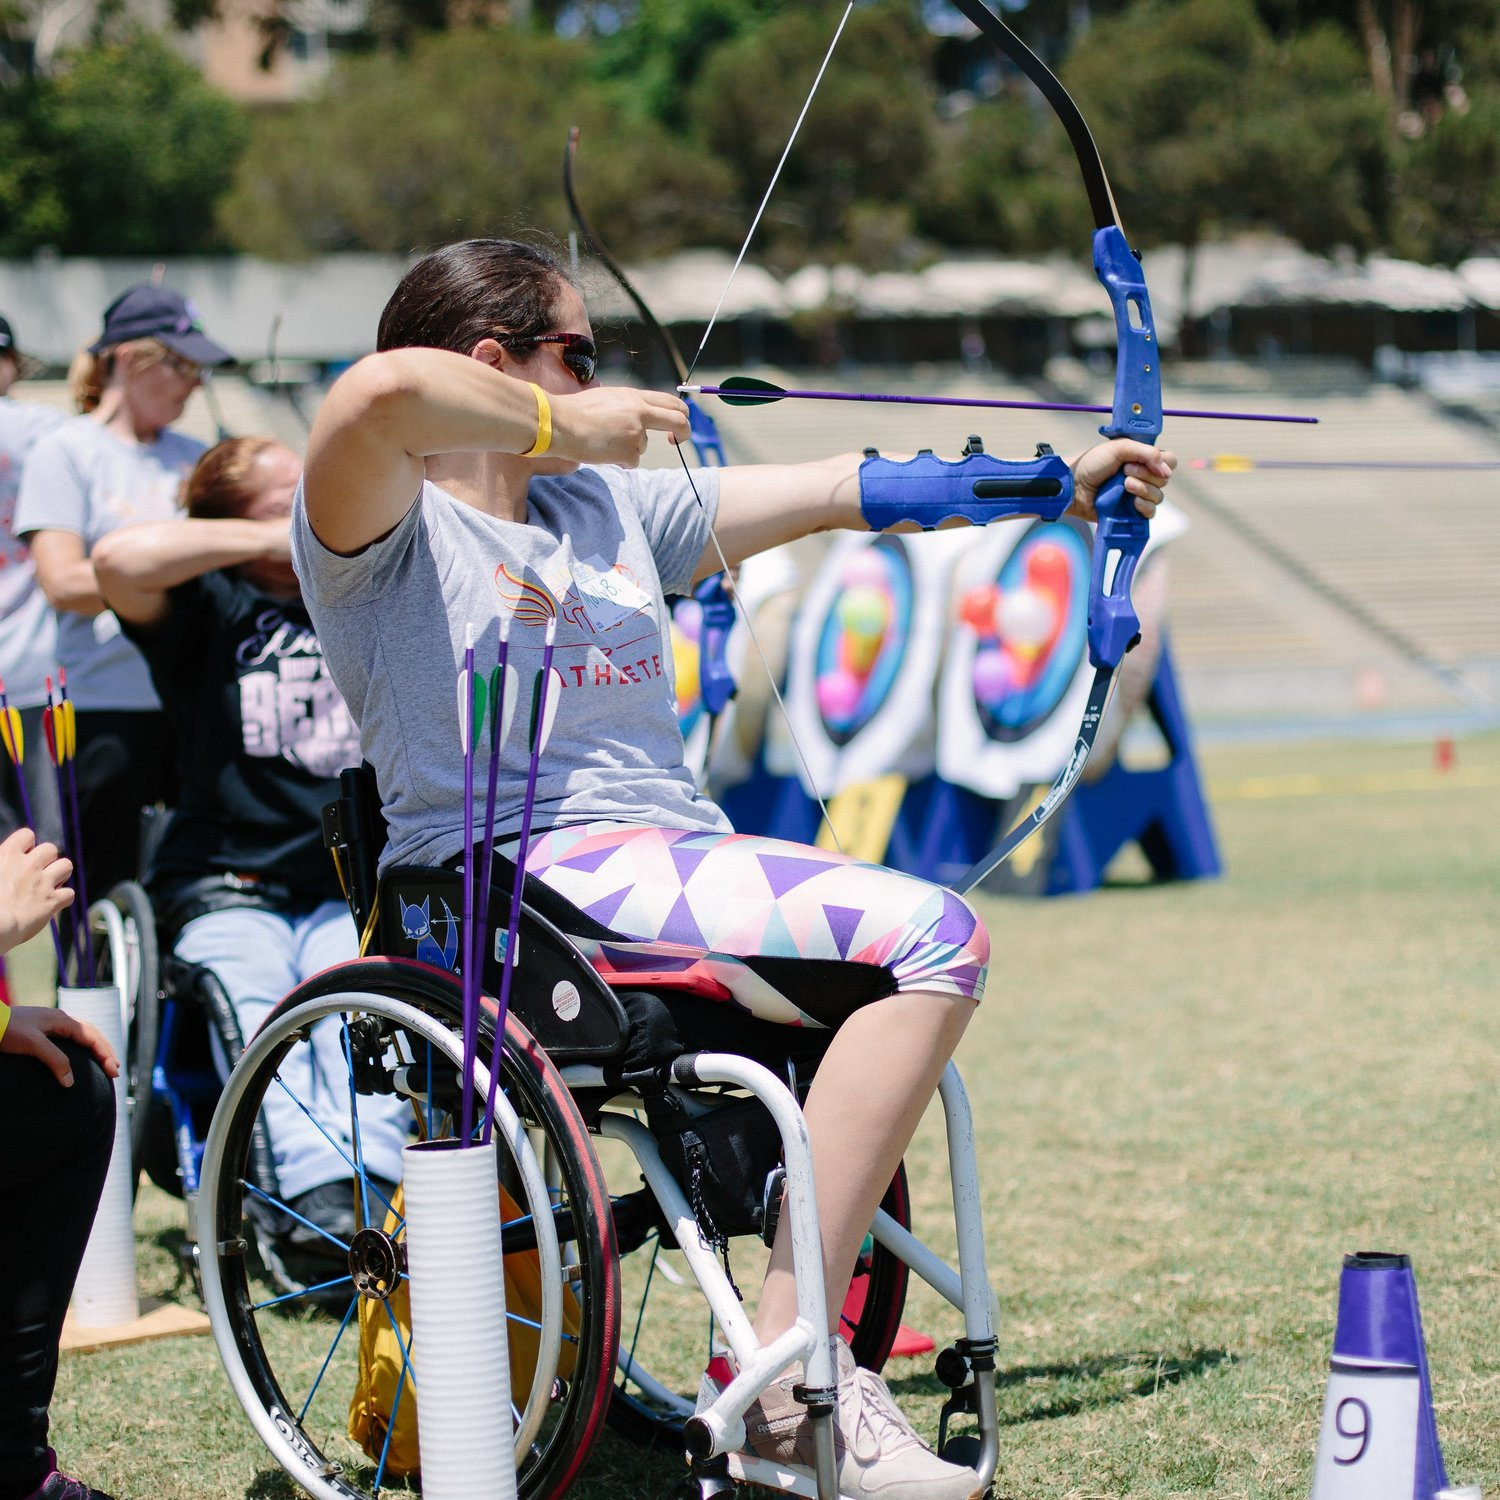 Adaptive Archery Clinic